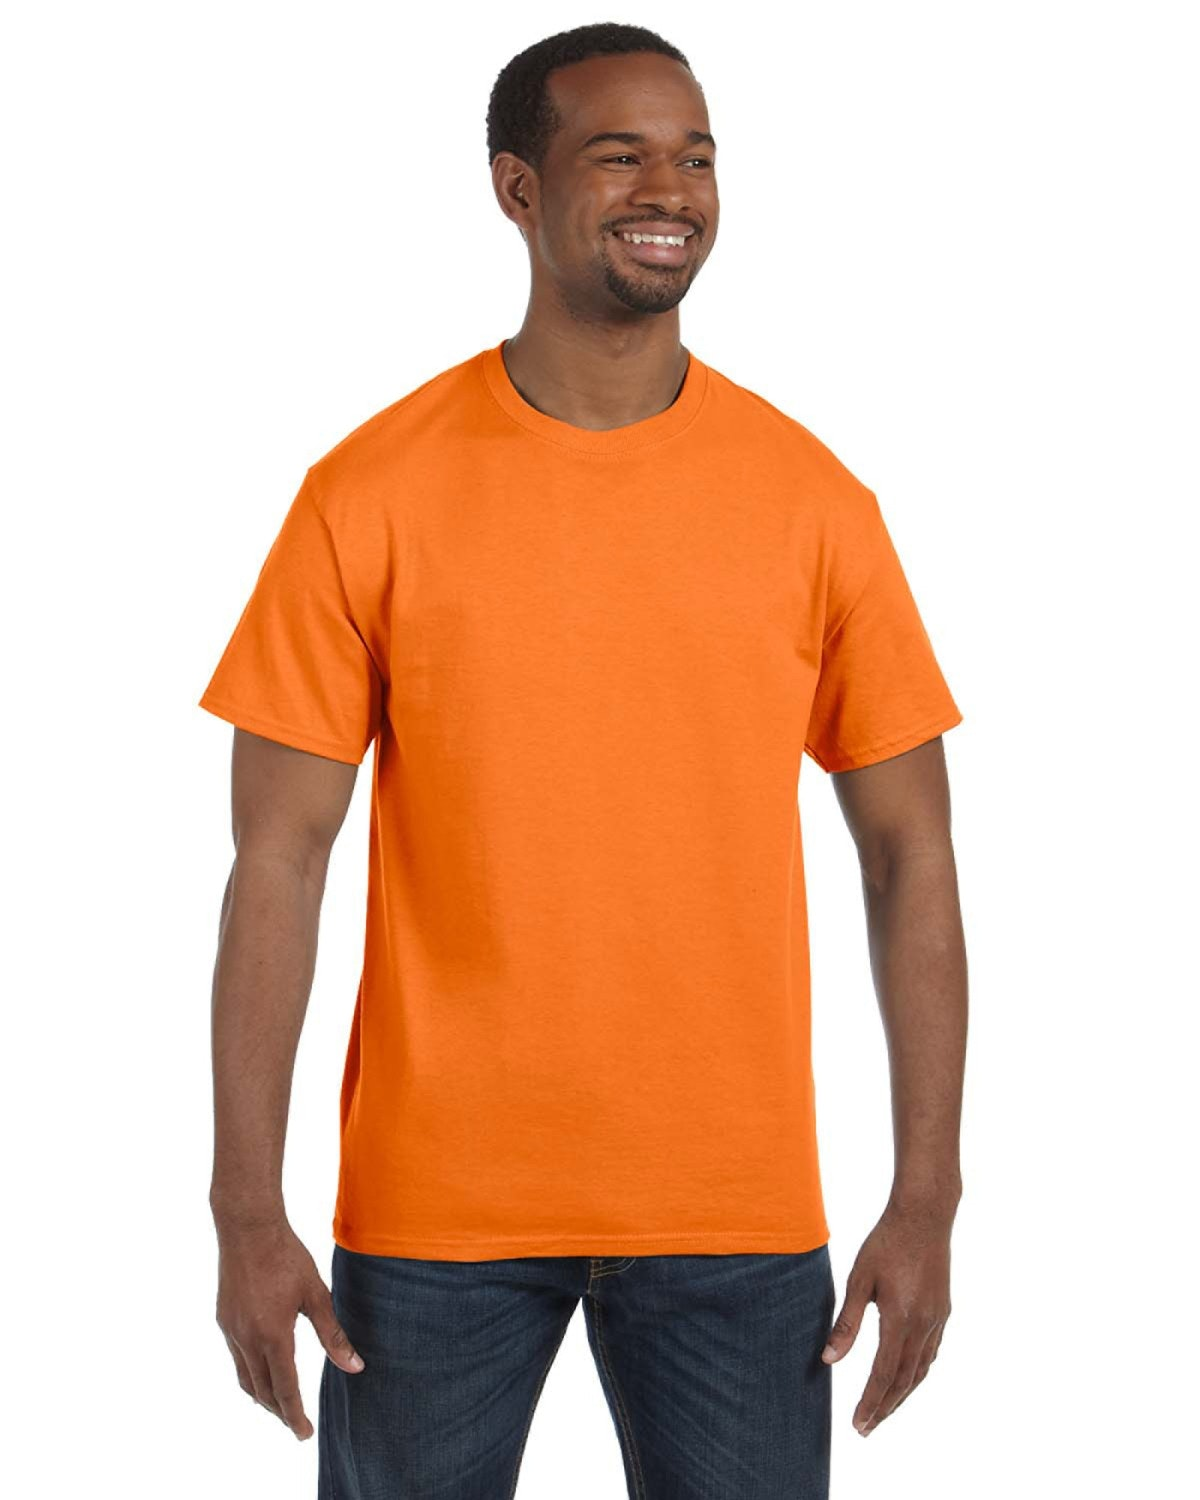 Gildan G500 High Viz Safety Orange